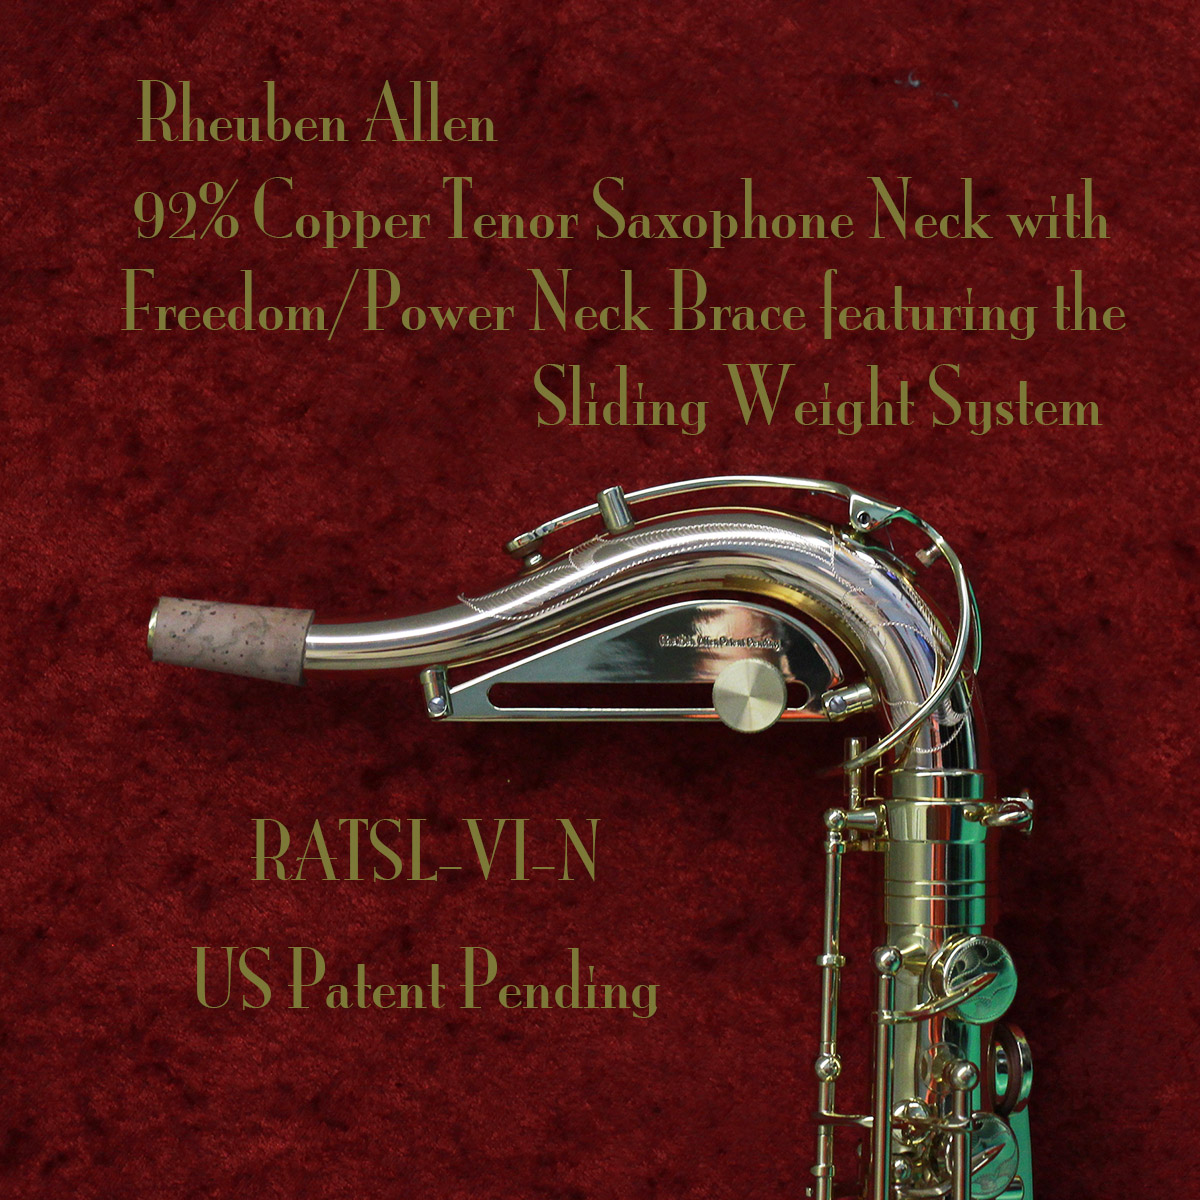 Rheuben Allen 92% Copper Tenor Sax Neck wi Sliding Weight System